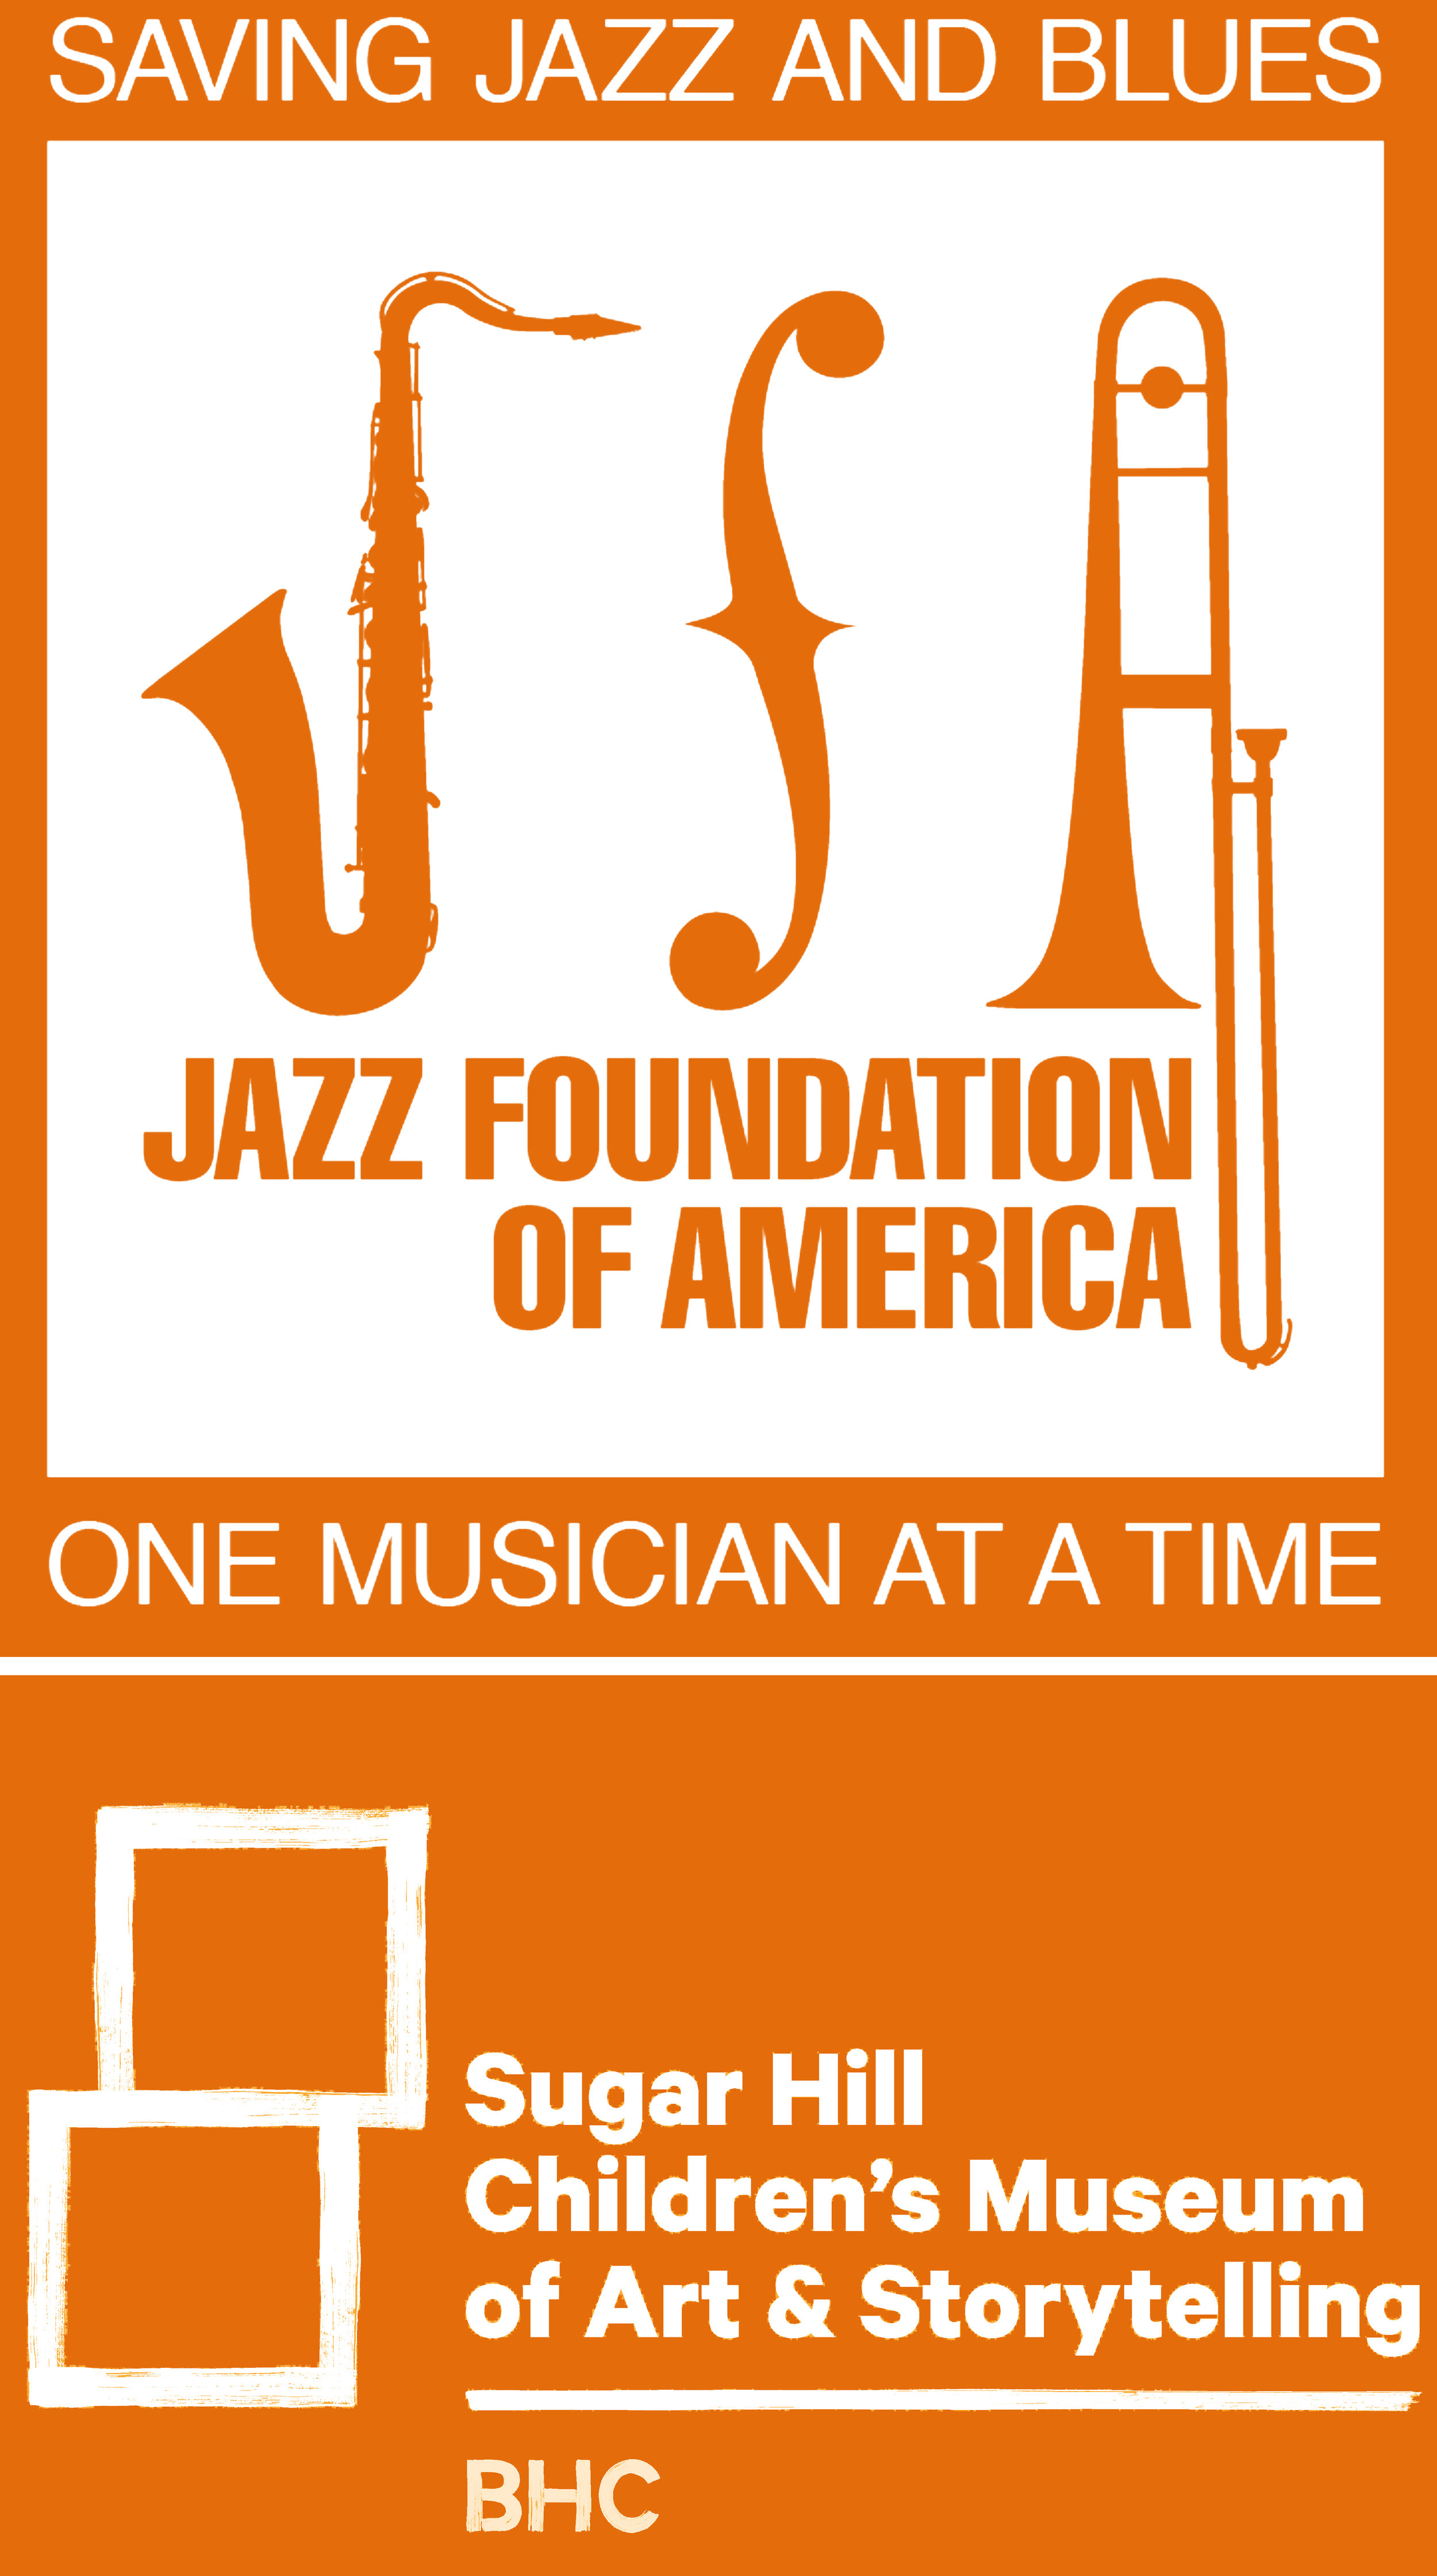 Orange SH+Jazz Fnd_Logos--VERT-copy (1).jpg